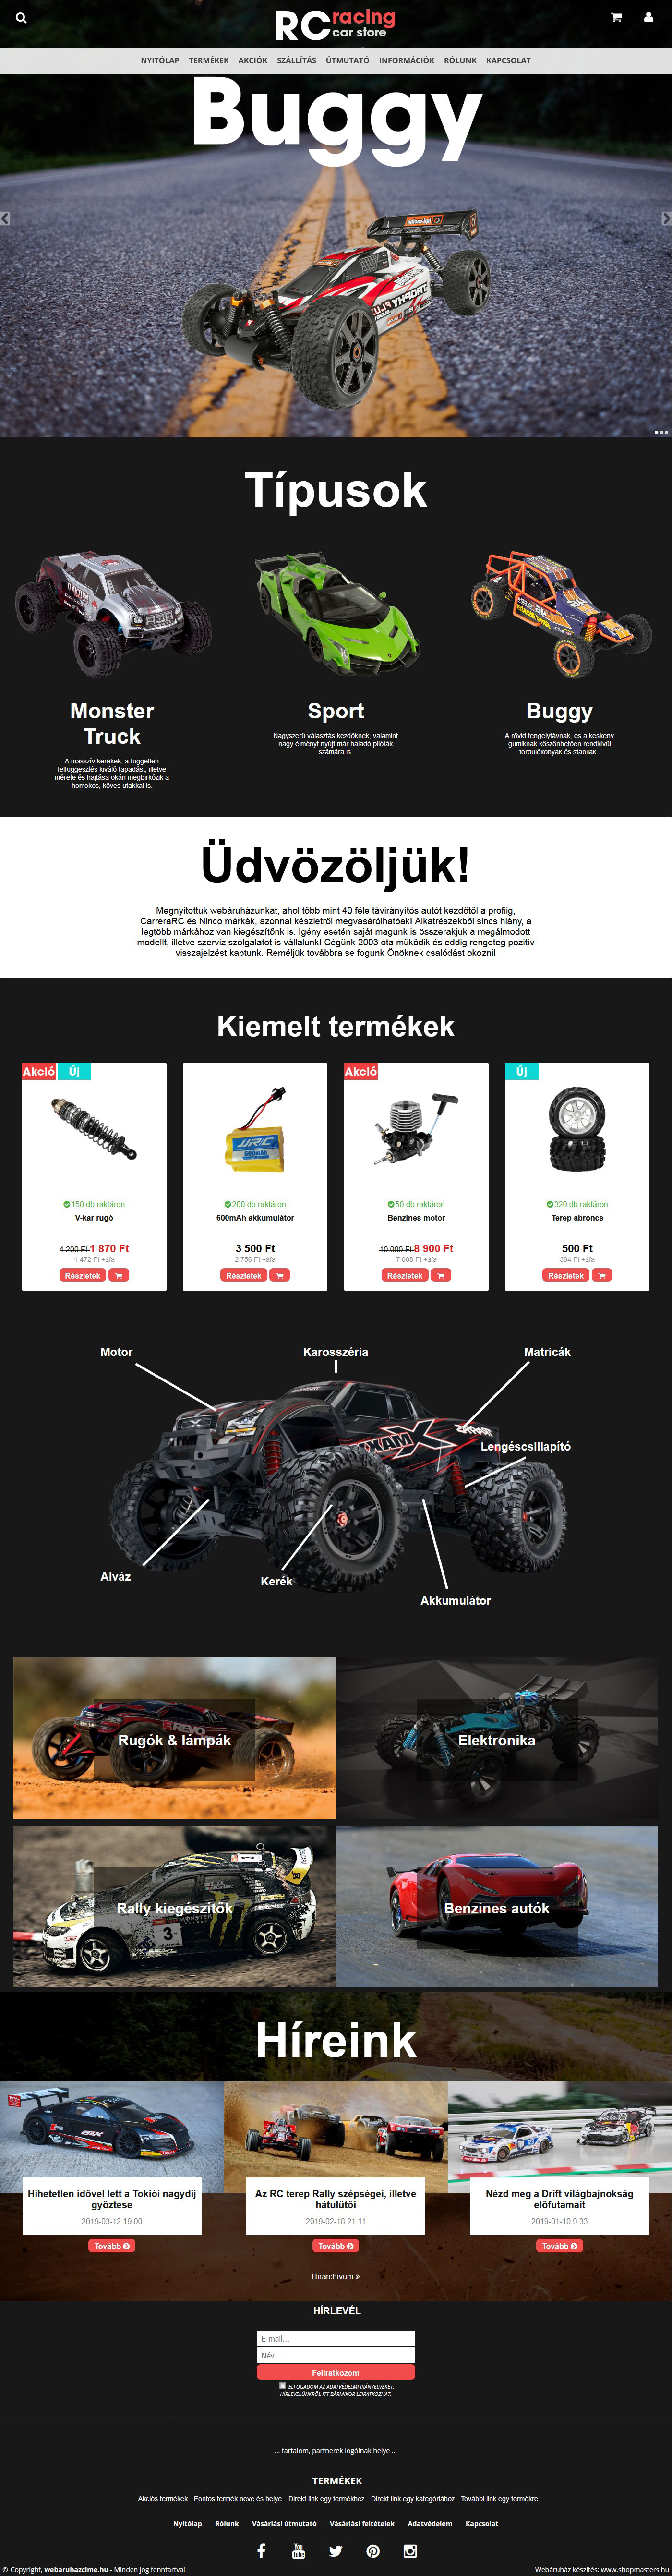 RC Racing webáruház webdesign, arculat